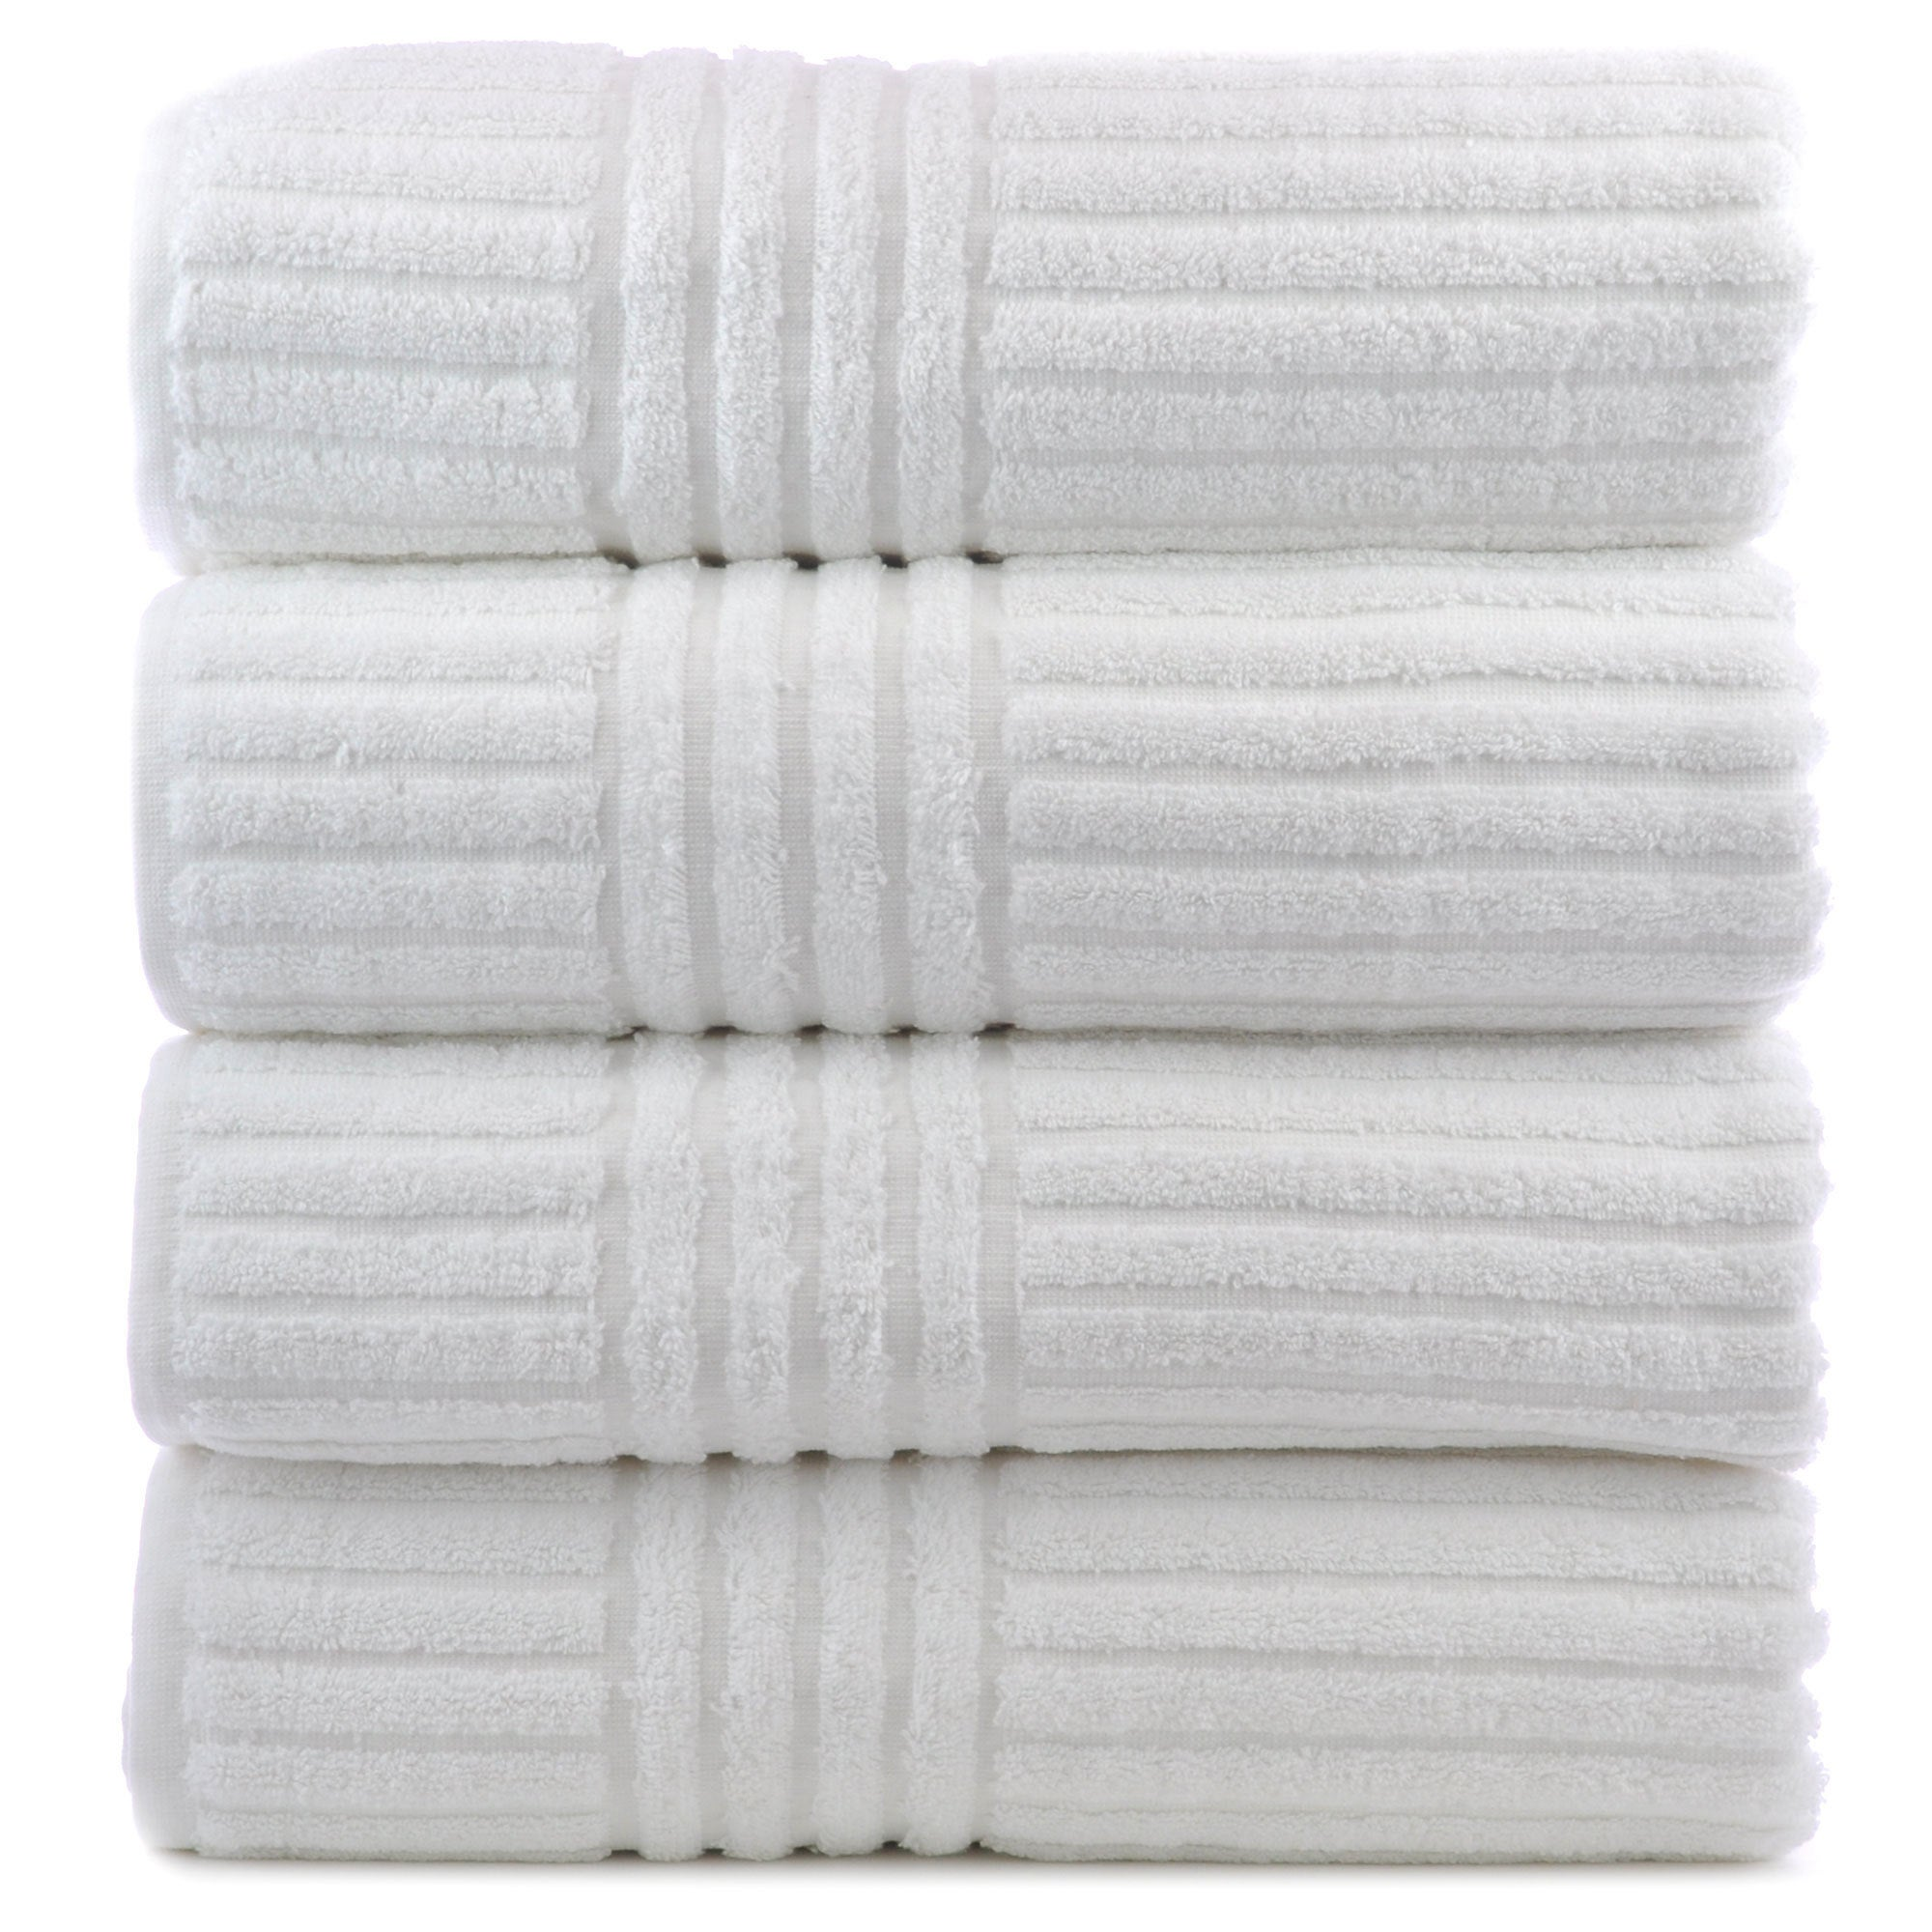 303 Protectant Luxury Hotel and Spa Towel 100-percent Gen...